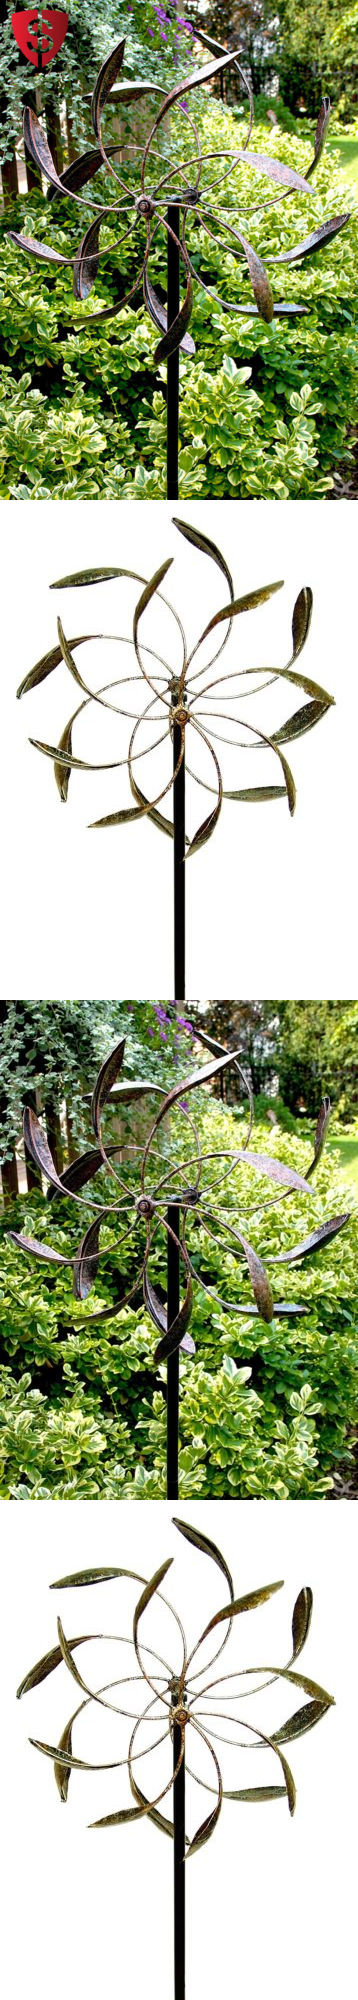 Windmills And Wind Spinners 115772: Garden Wind Spinner Yard Décor Windmill  Outdoor Metal Stake Kinetic